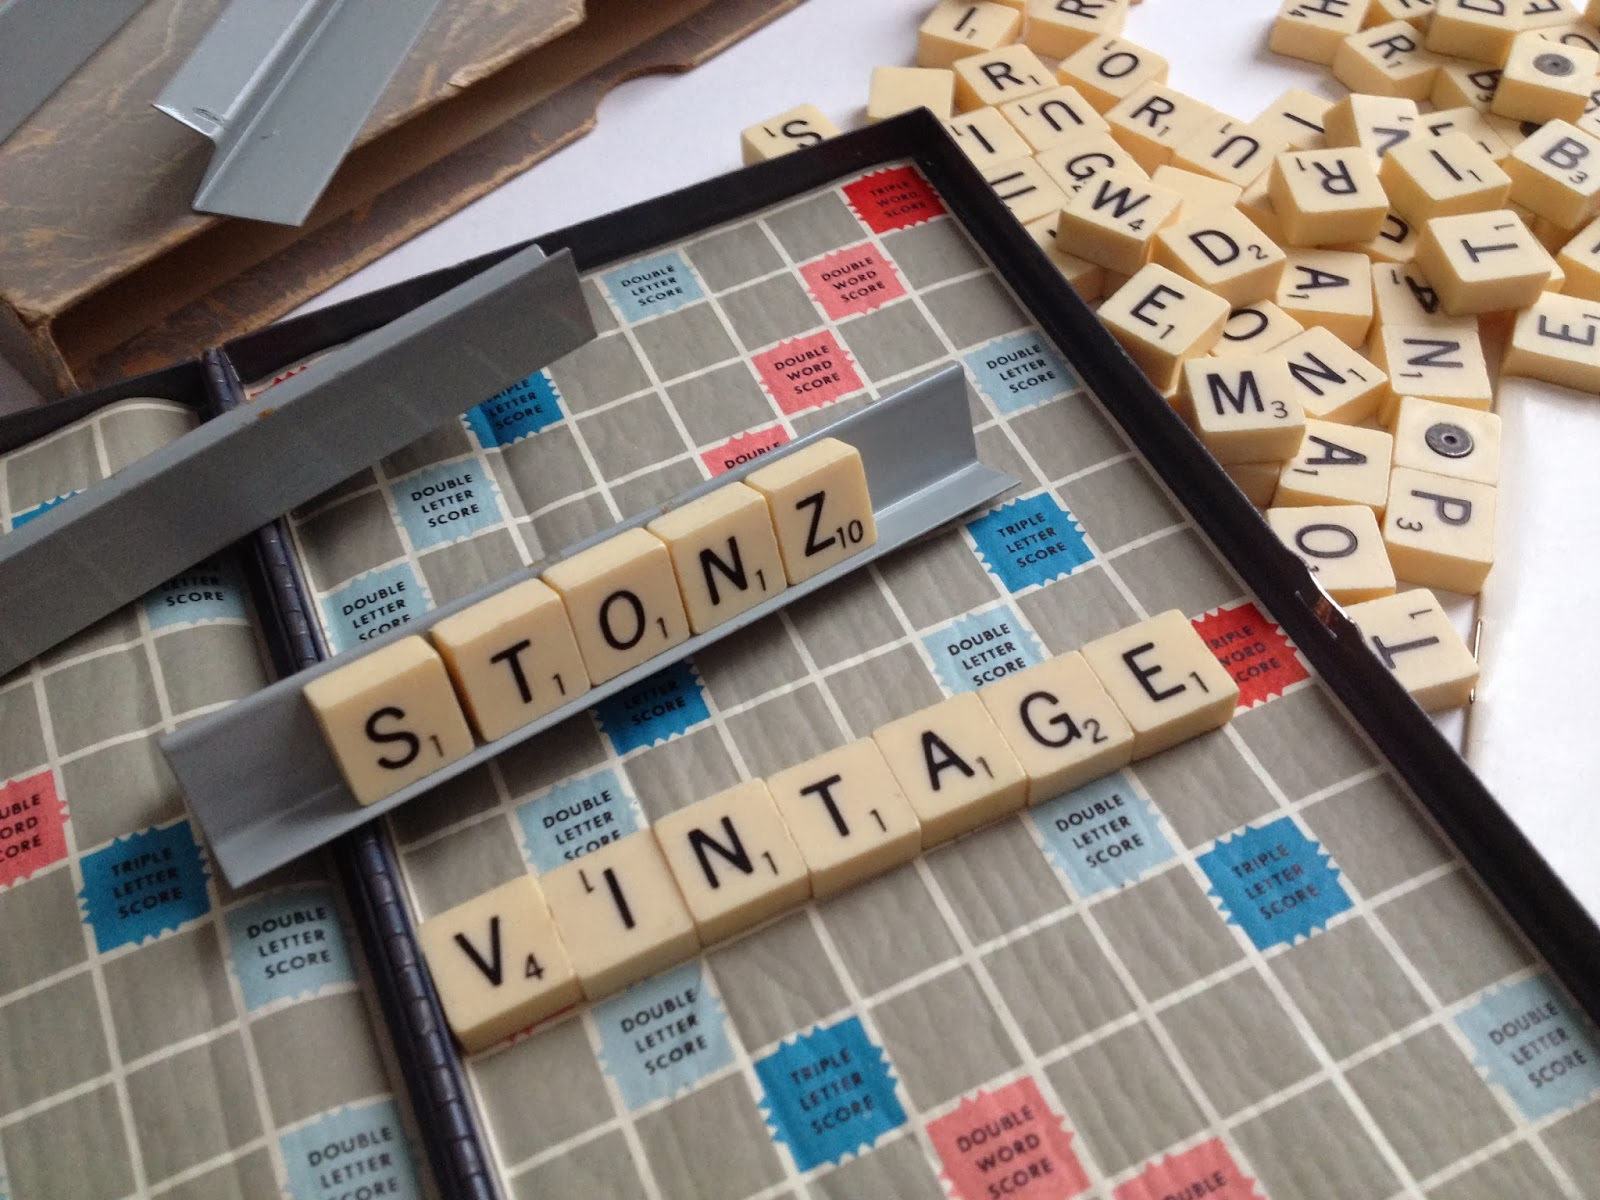 https://www.etsy.com/listing/178028988/1950s-magnetic-travel-scrabble-game?ref=listing-shop-header-4